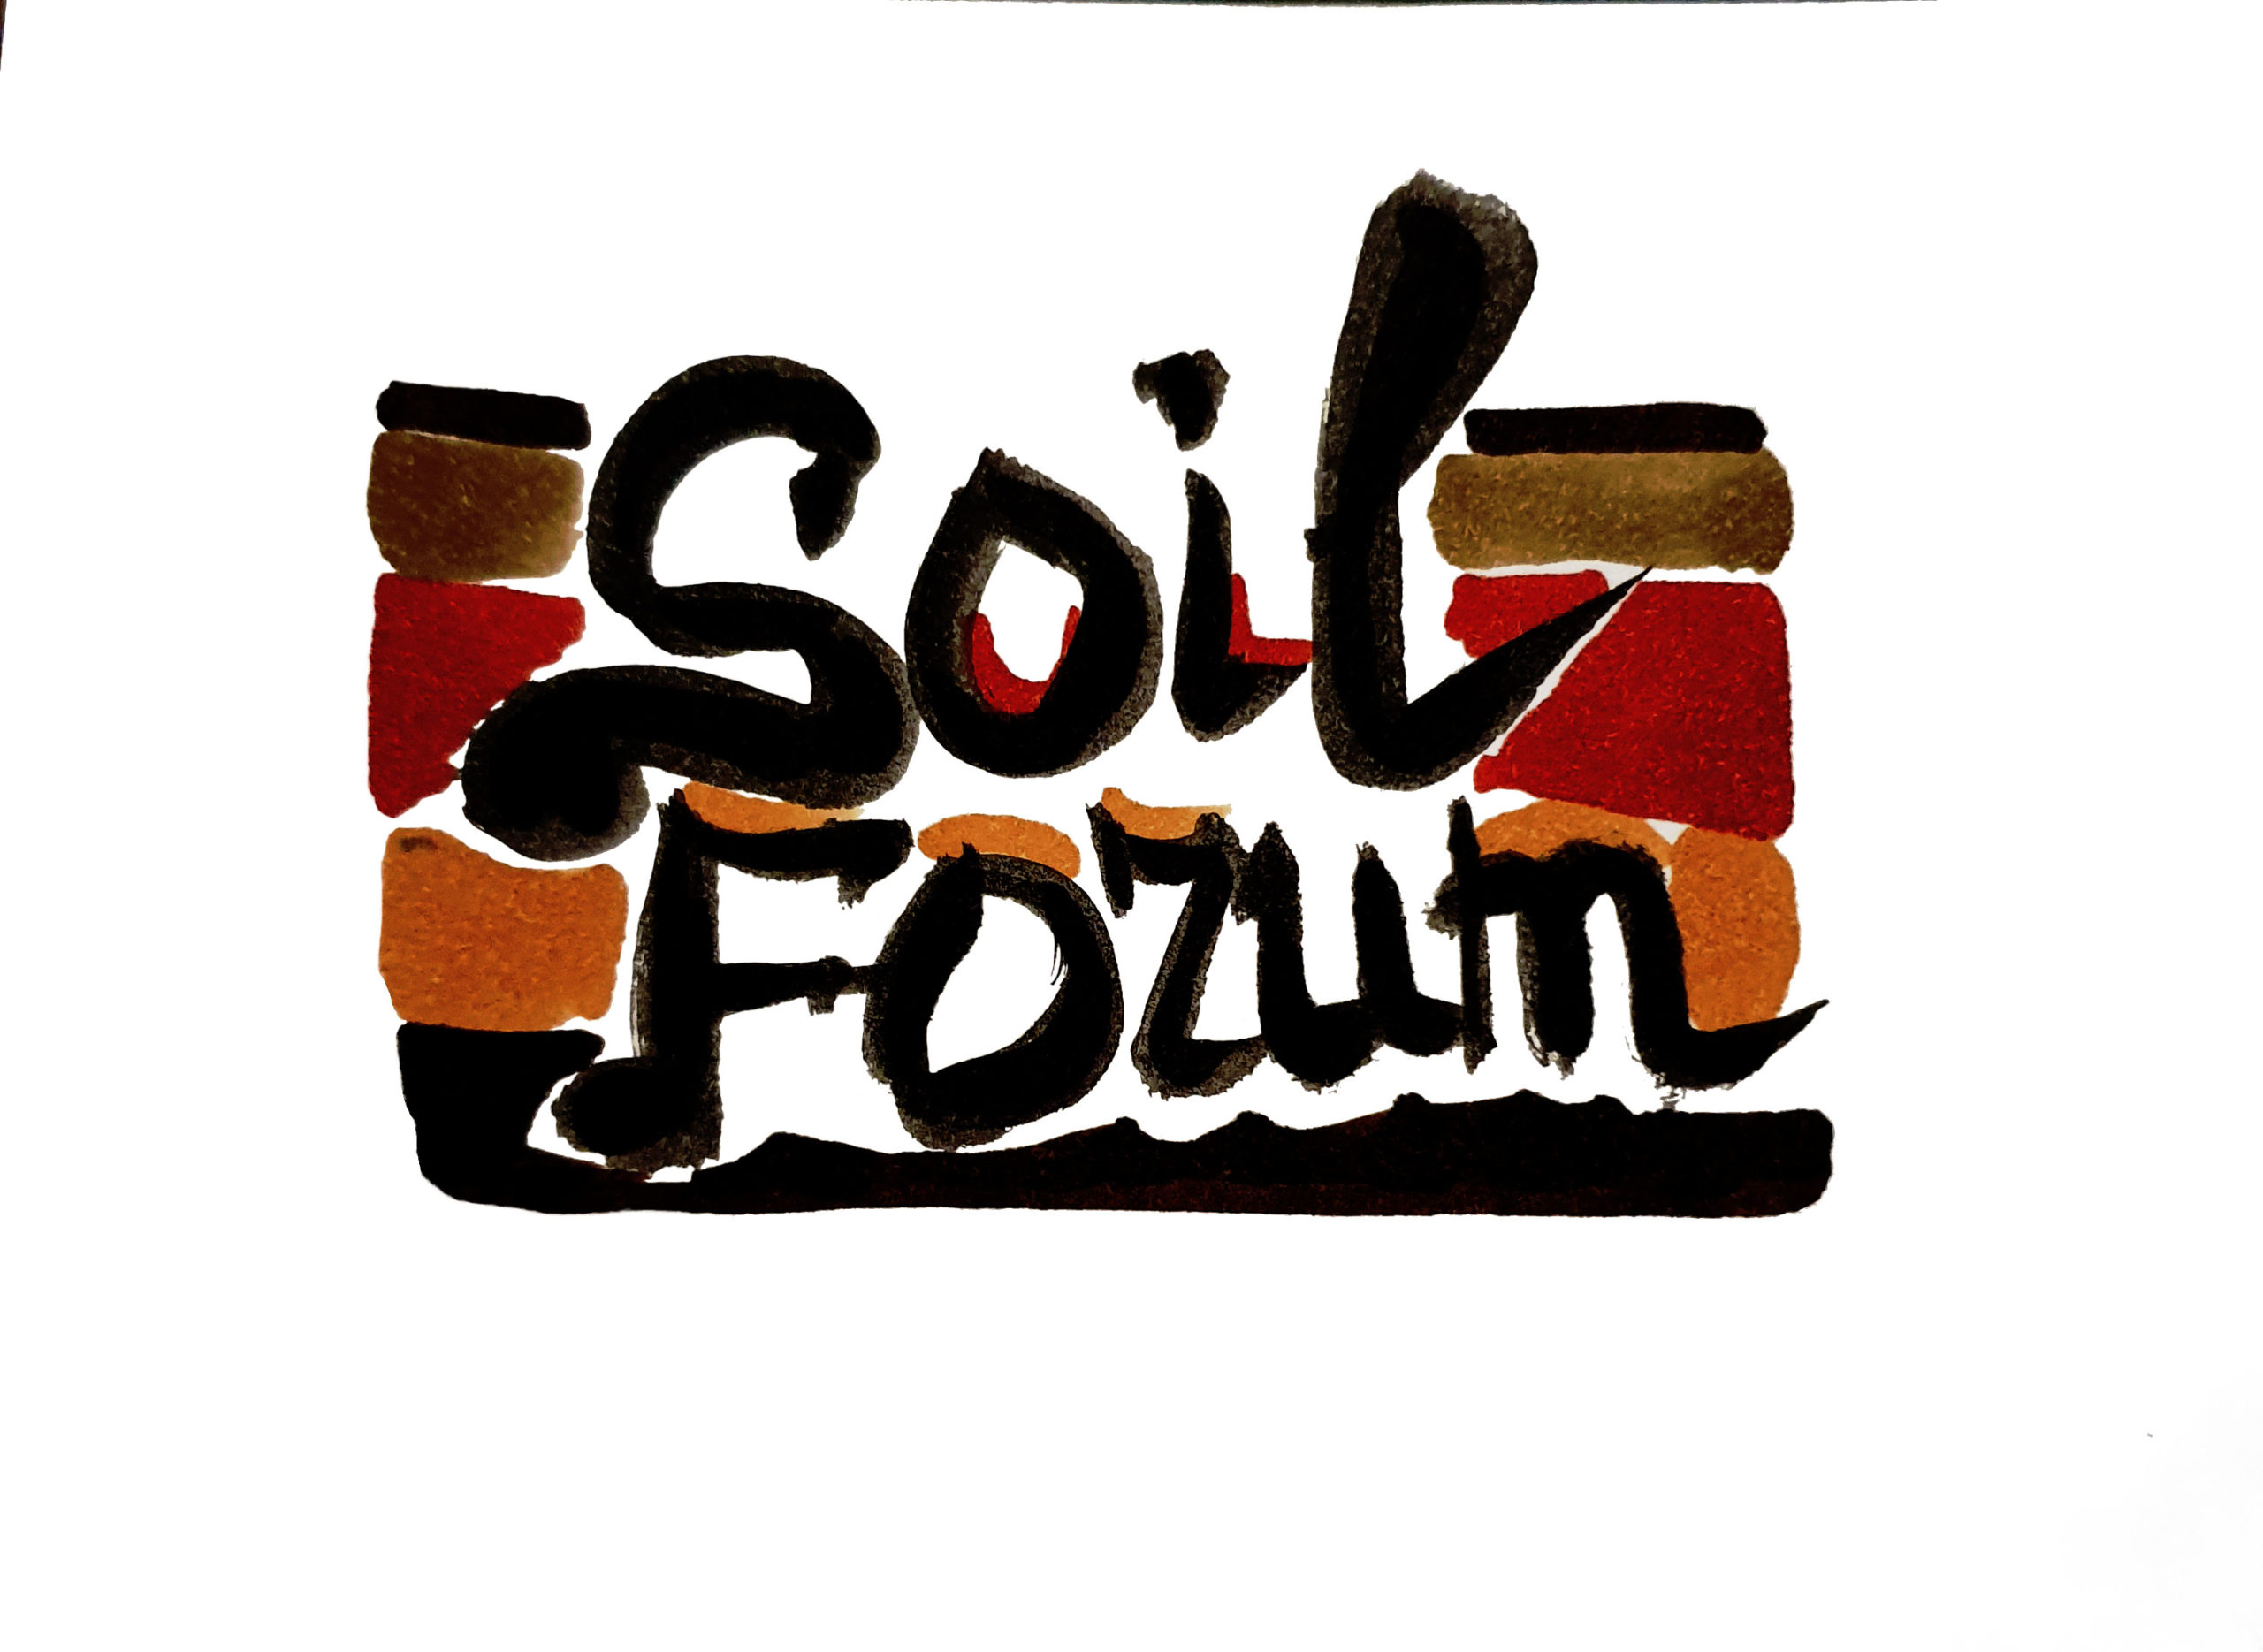 soil science soilforum-logo